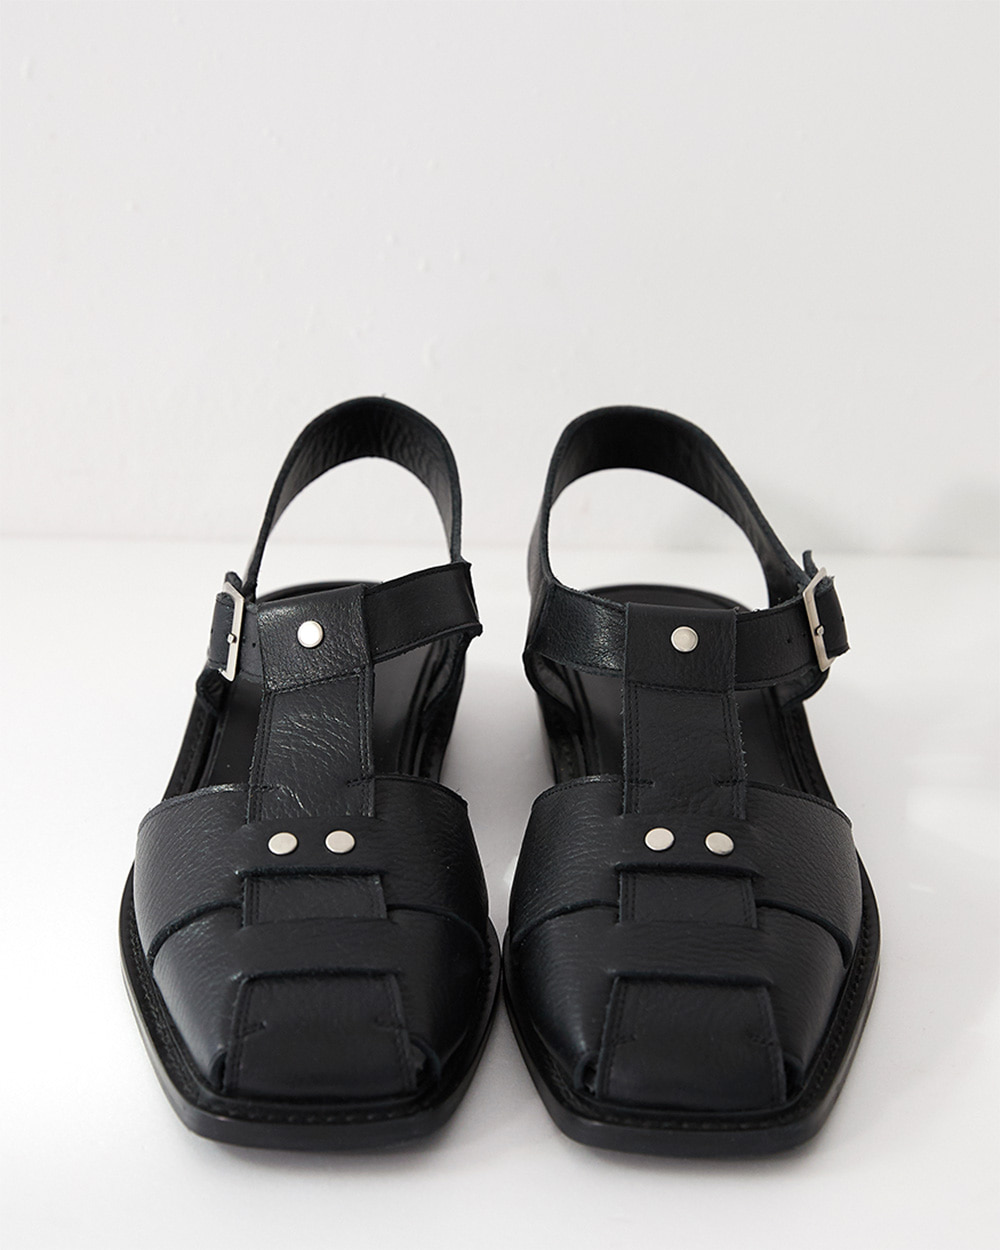 HALEINE알렌느 BLACK fisherman sandal(NH003)